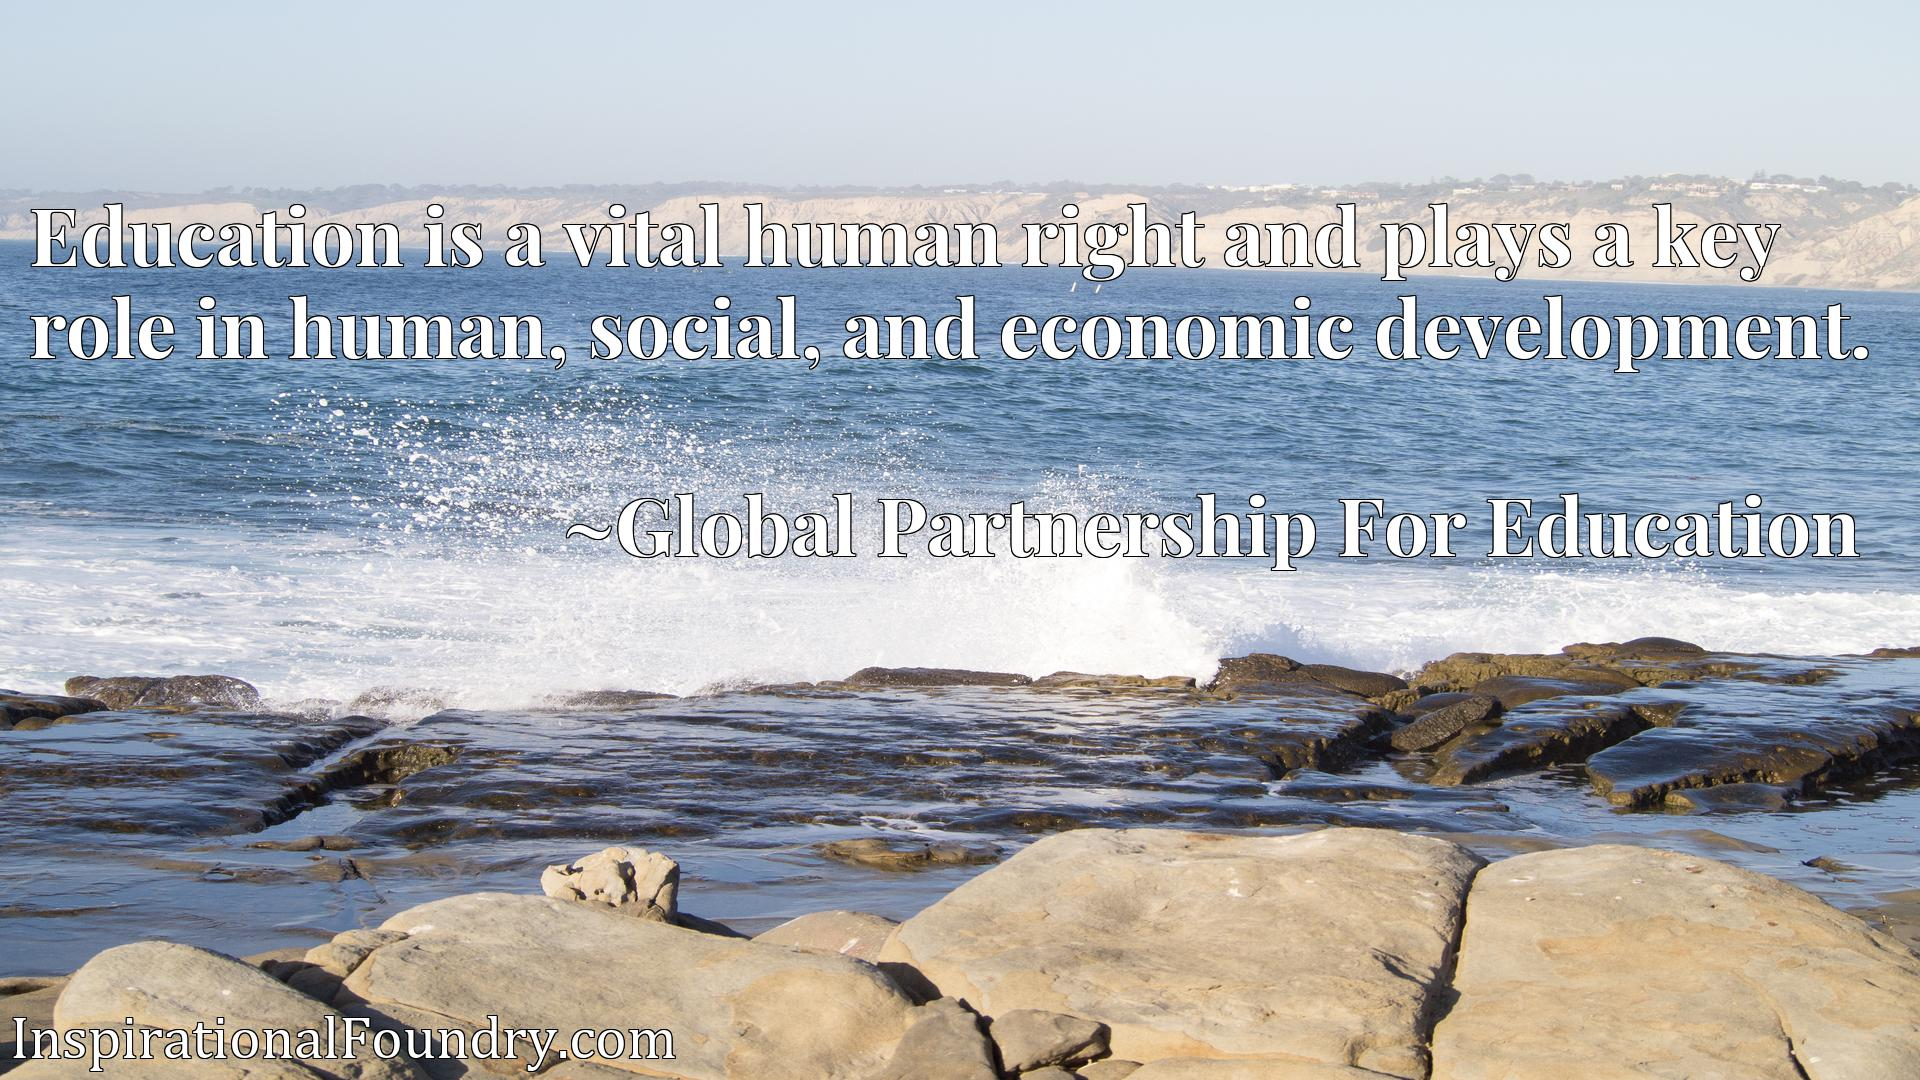 Education is a vital human right and plays a key role in human, social, and economic development.